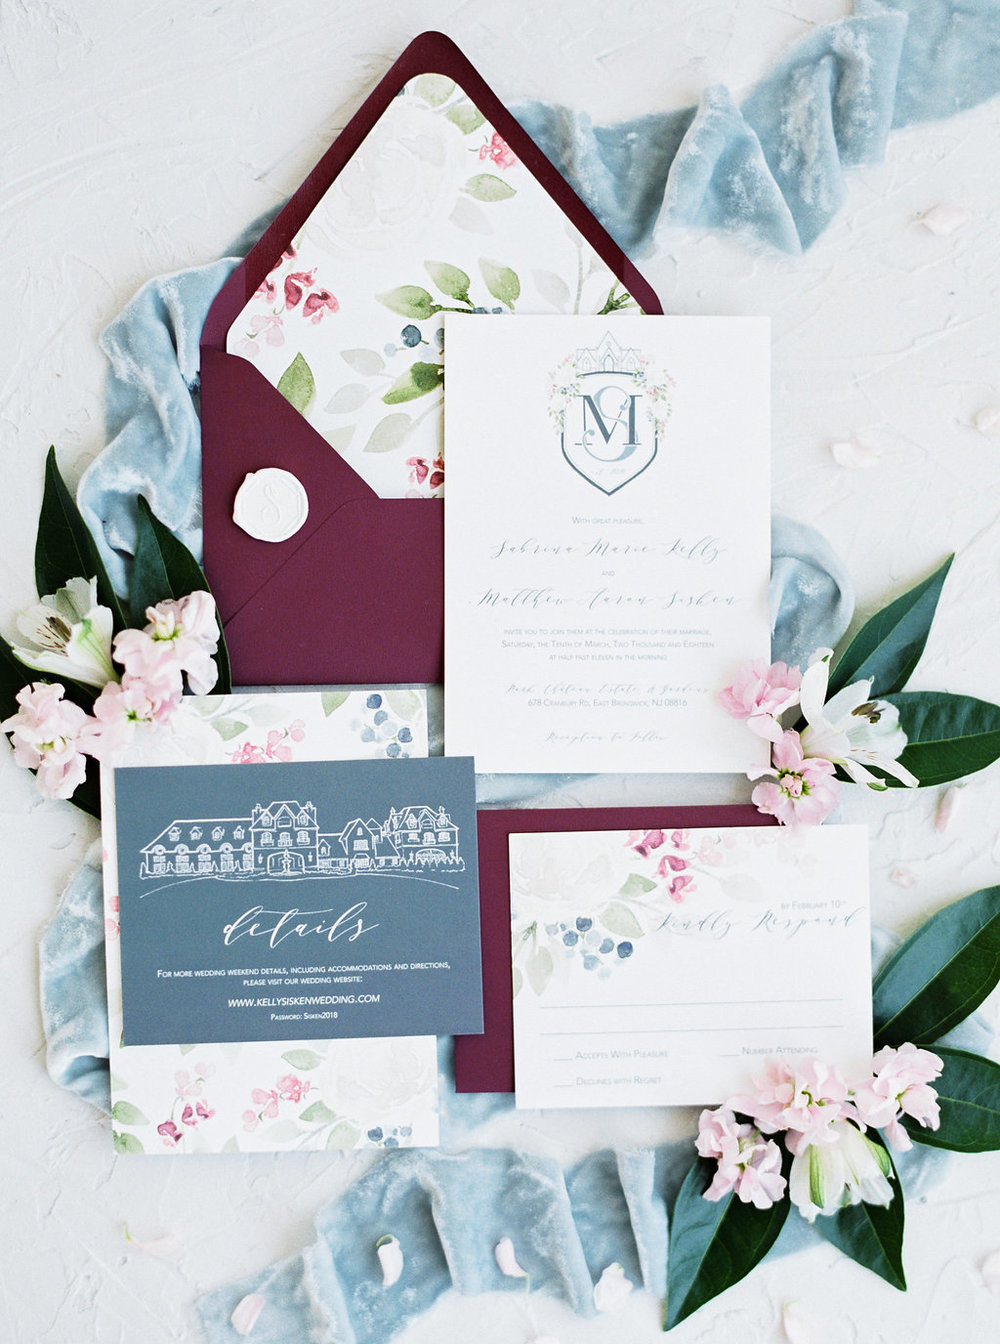 Winter Park Chateau Wedding in New Jersey.  Wedding Stationery and Monogram Crest by Blushed Design || Wedding Invitations and Fine Art Portraits